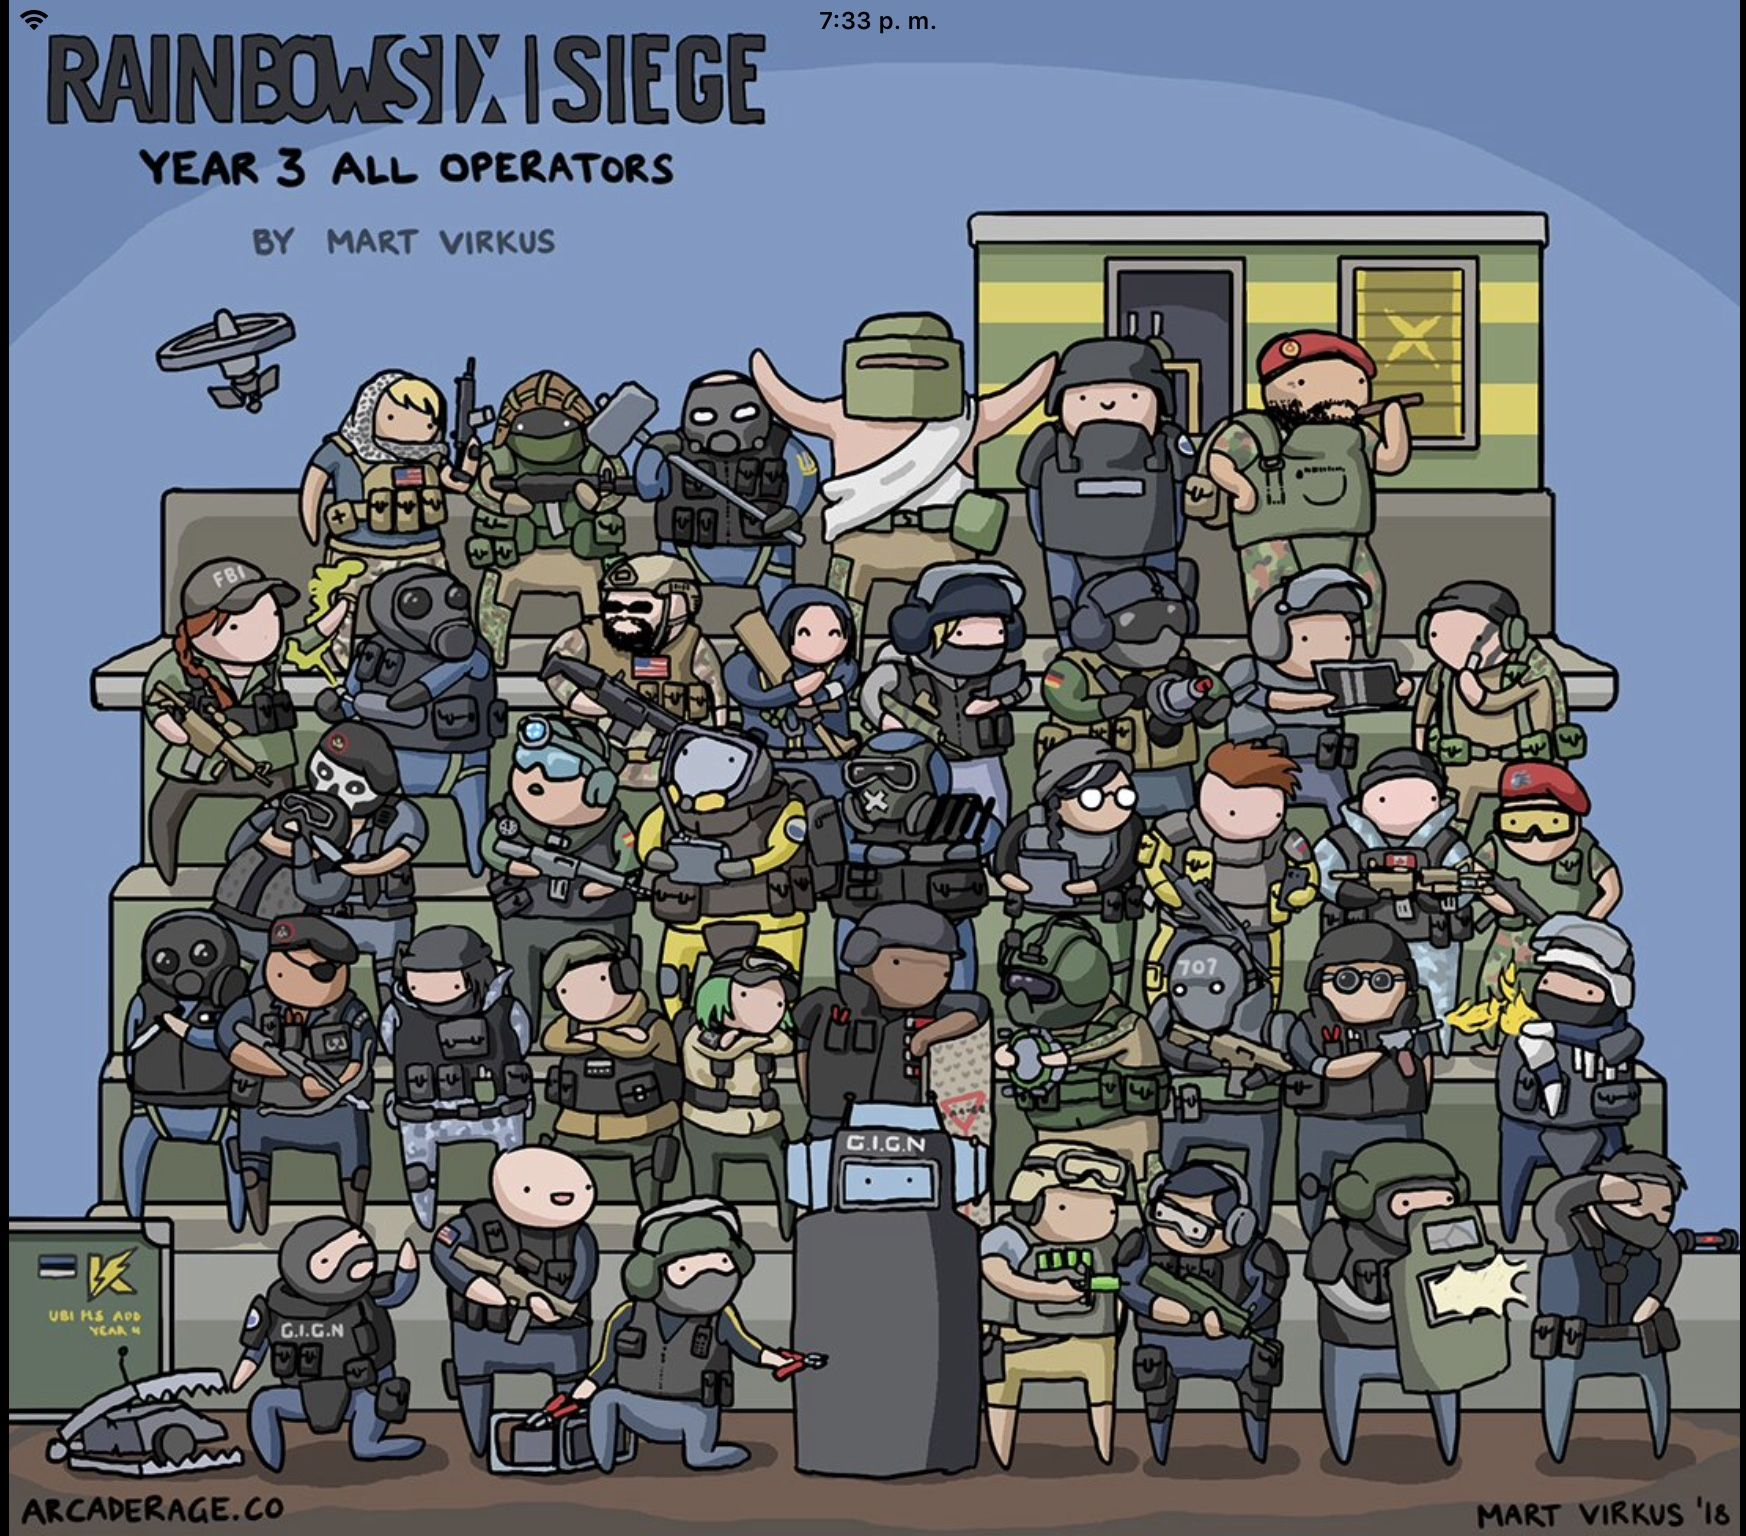 Pin By Kenzie On Ok Stuff With Images Rainbow Six Siege Art